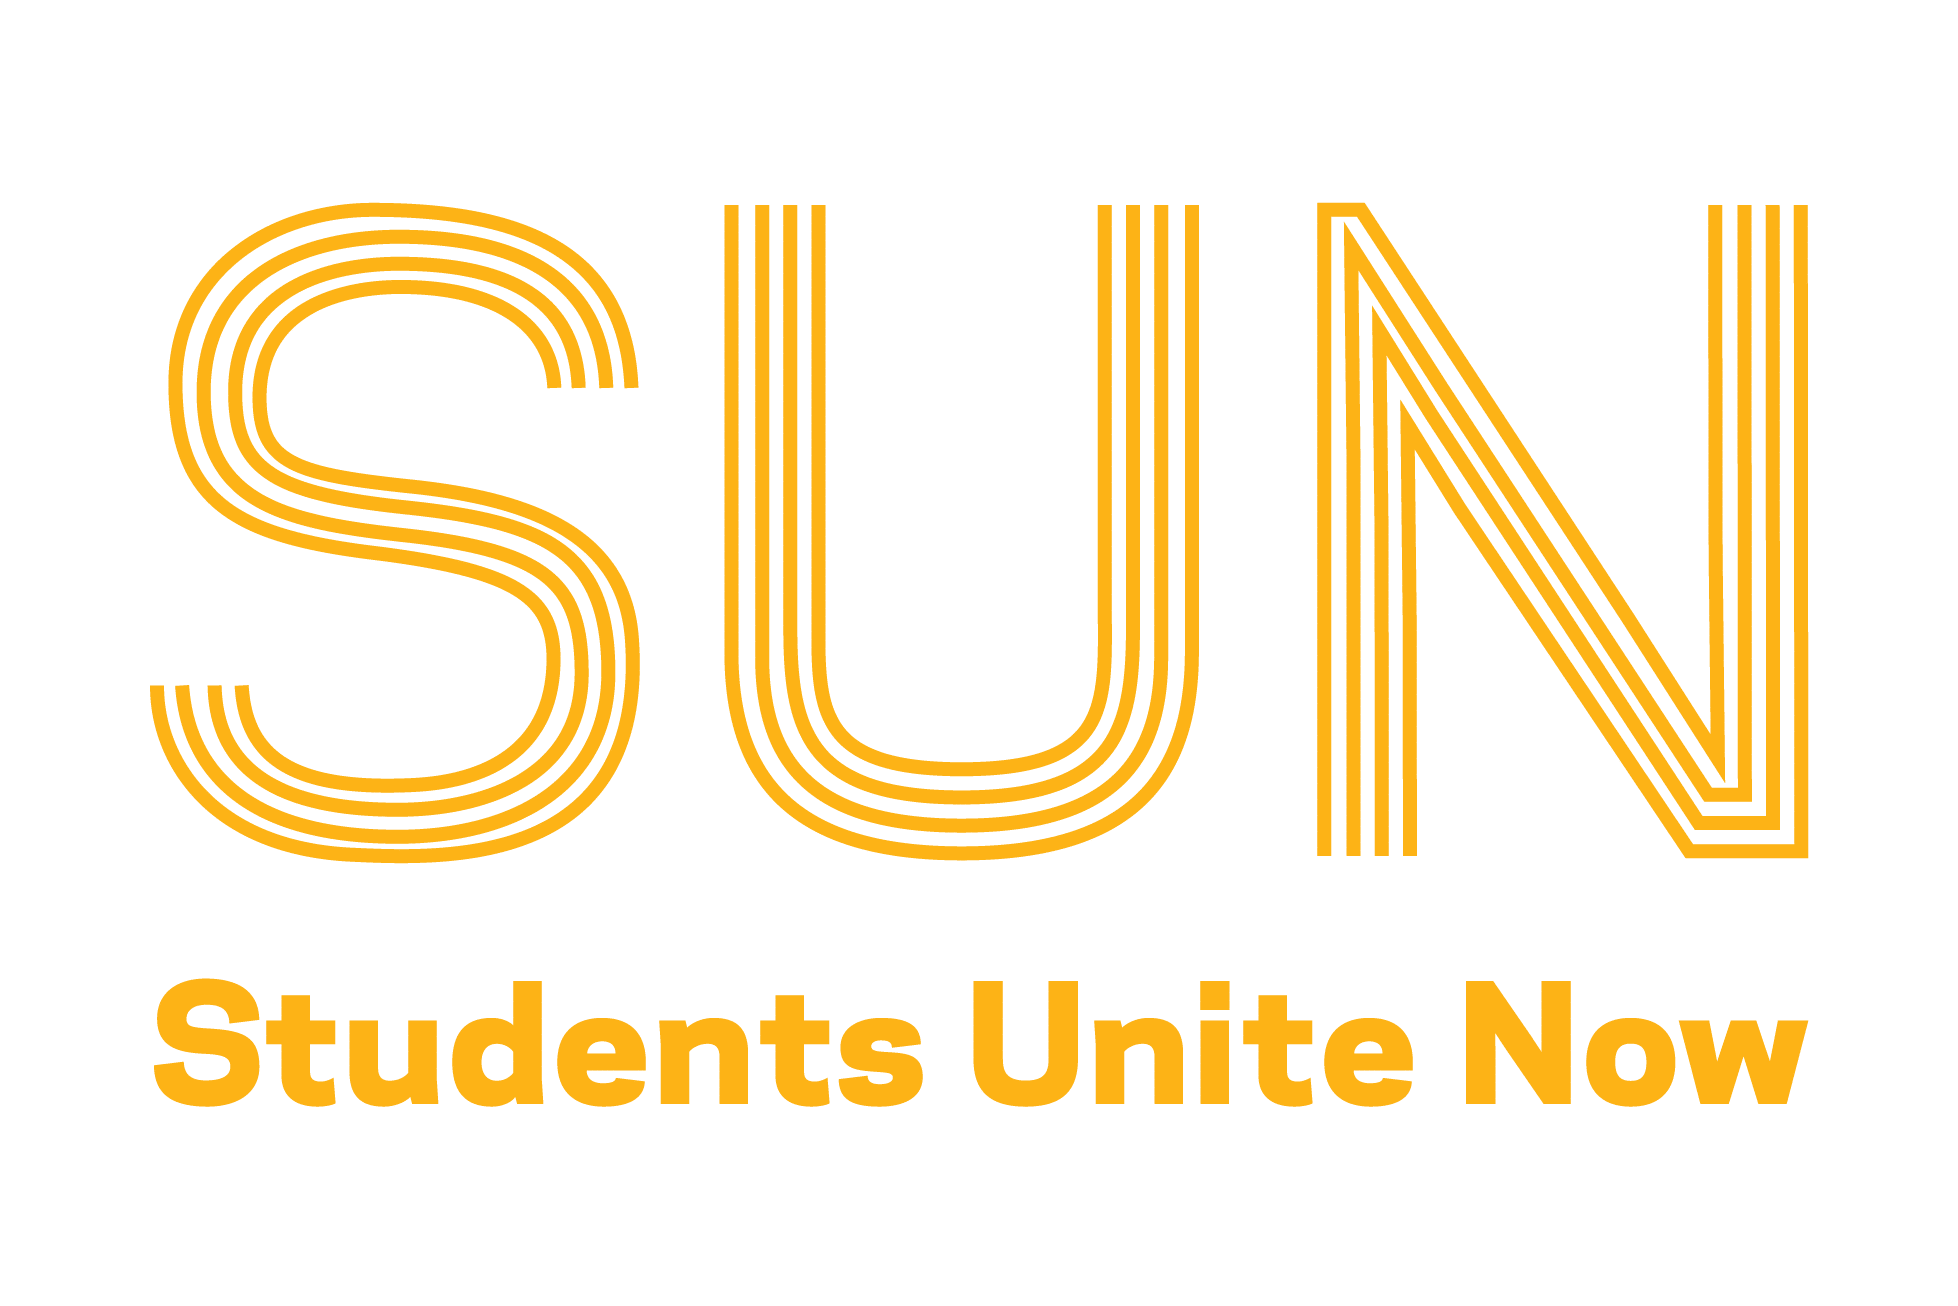 Students Unite Now